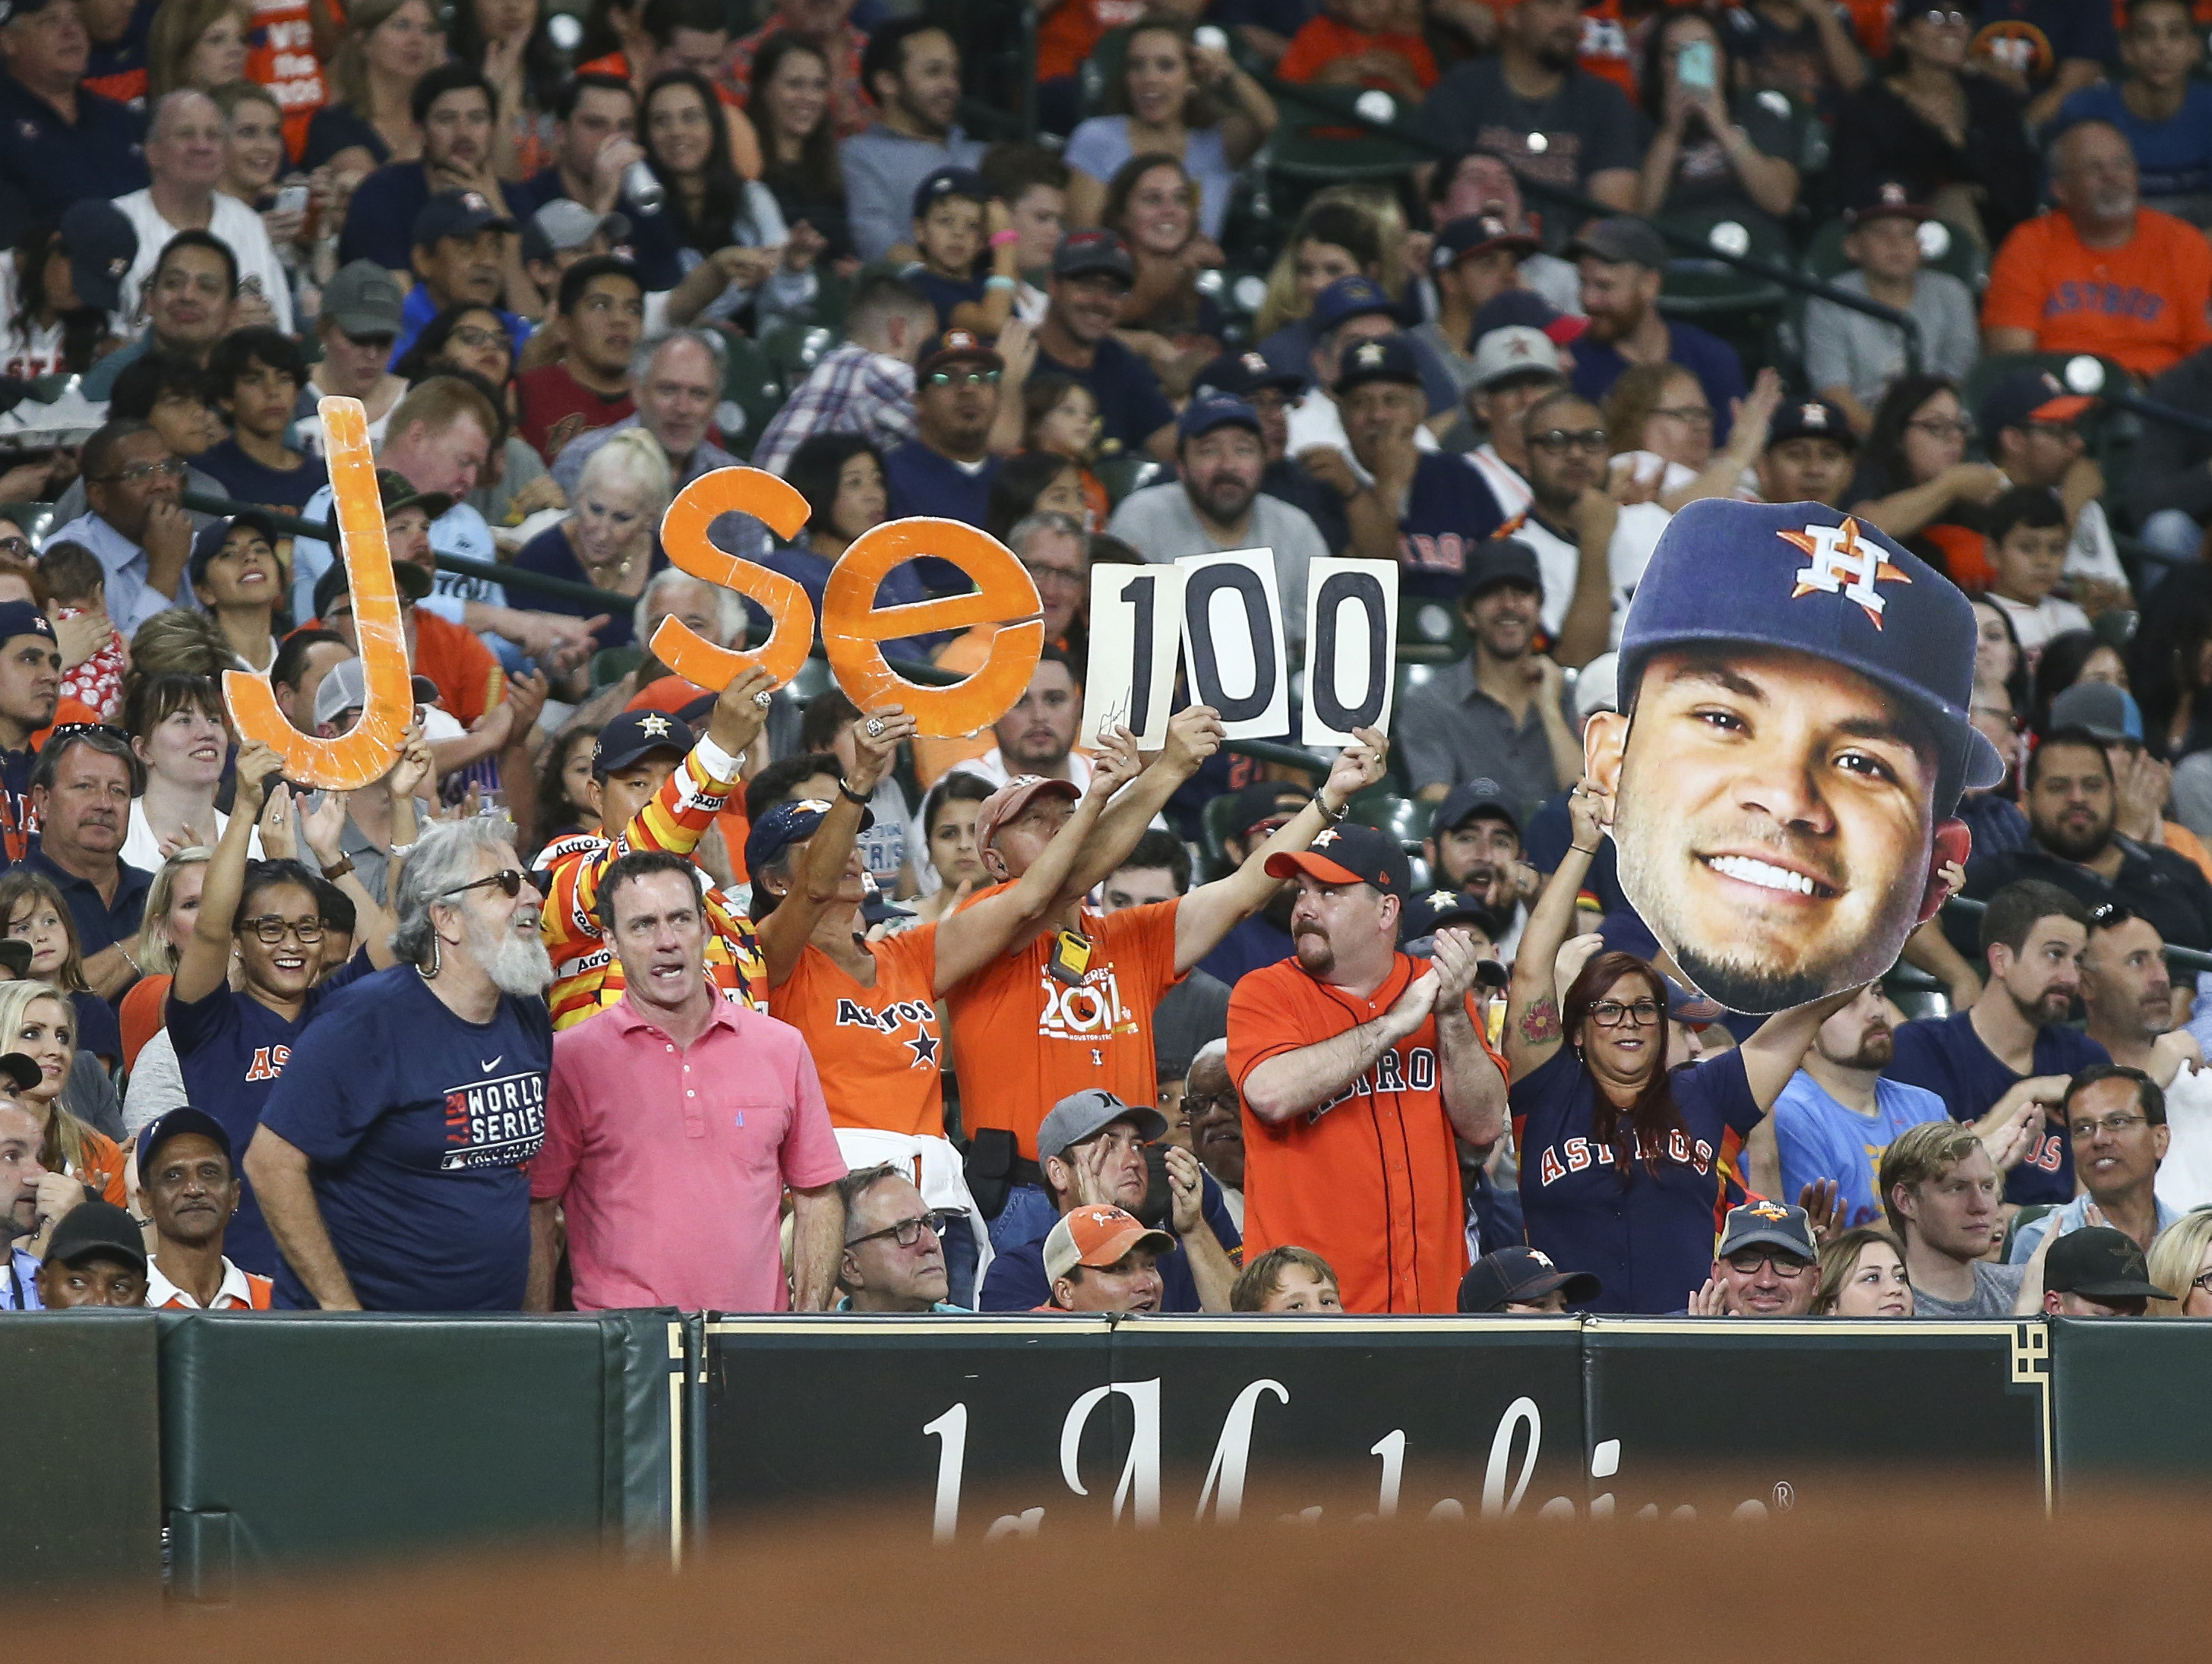 MLB: Tampa Bay Rays at Houston Astros